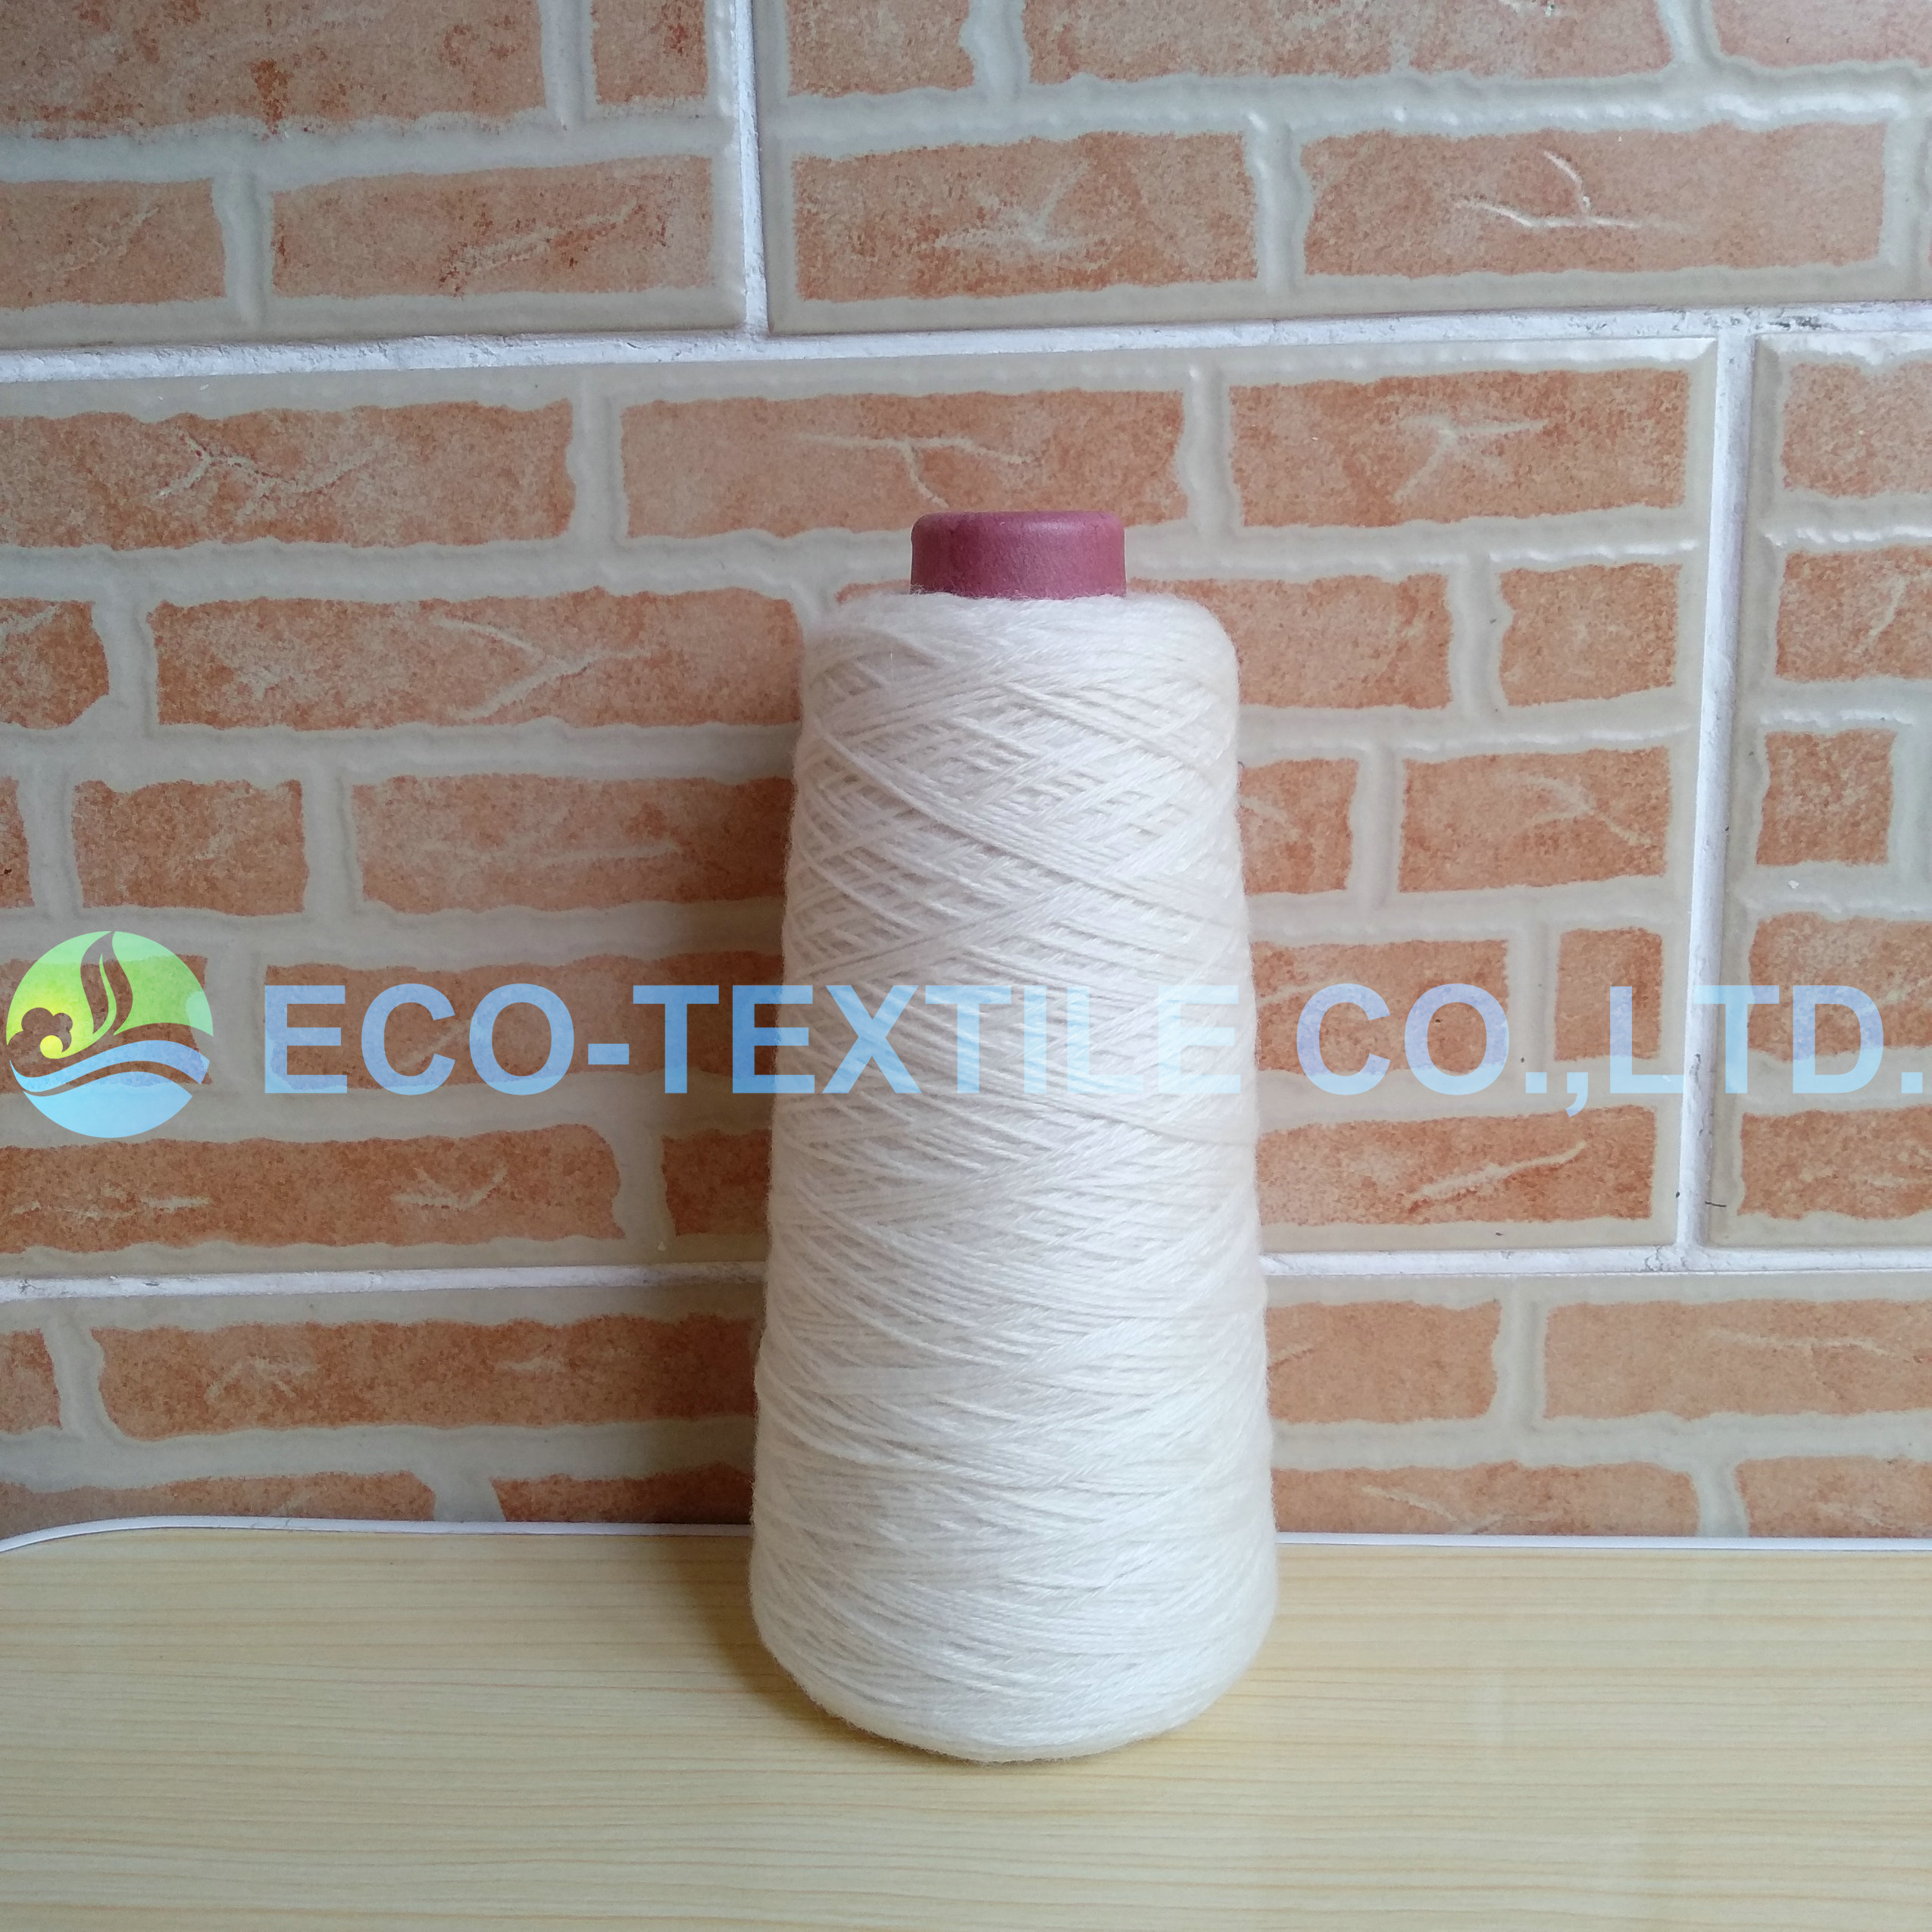 MERINO WOOL/NYLON HANDCRAFT YARN